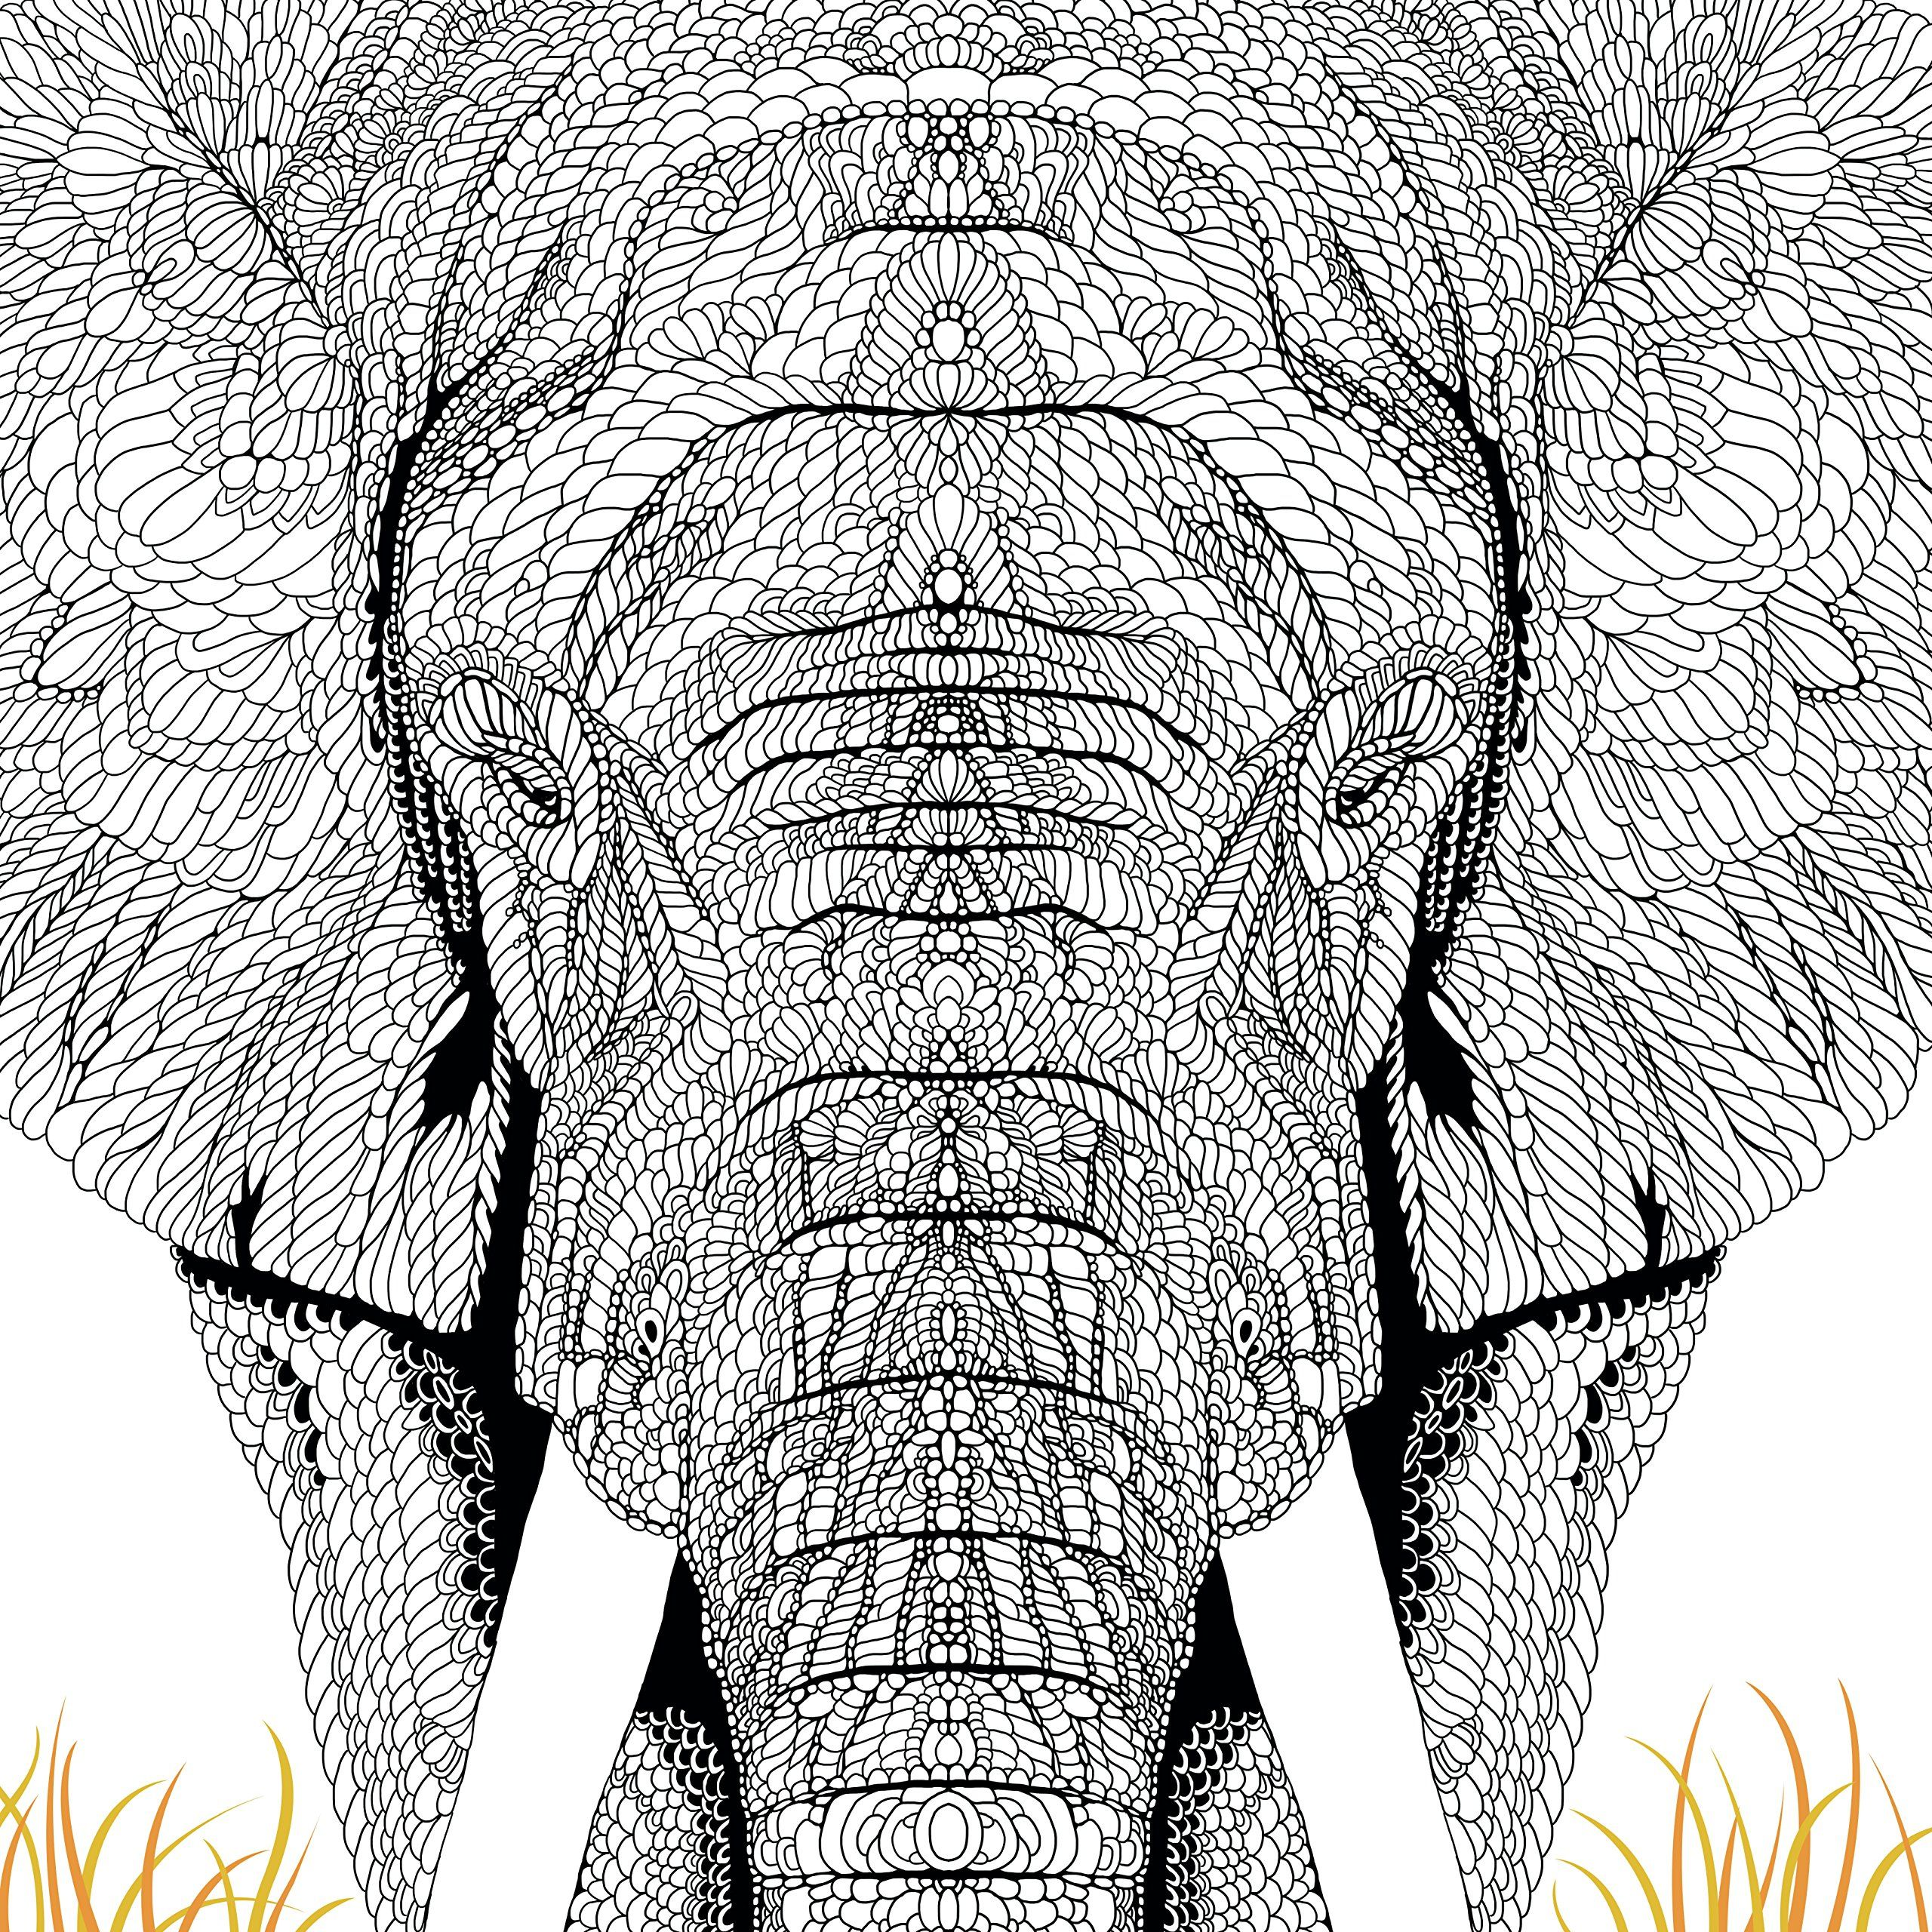 Mandala coloring pages amazon - The Menagerie Animal Portraits To Colour Amazon Co Uk Richard Merritt Mandala Coloringcolouring Pagescoloring